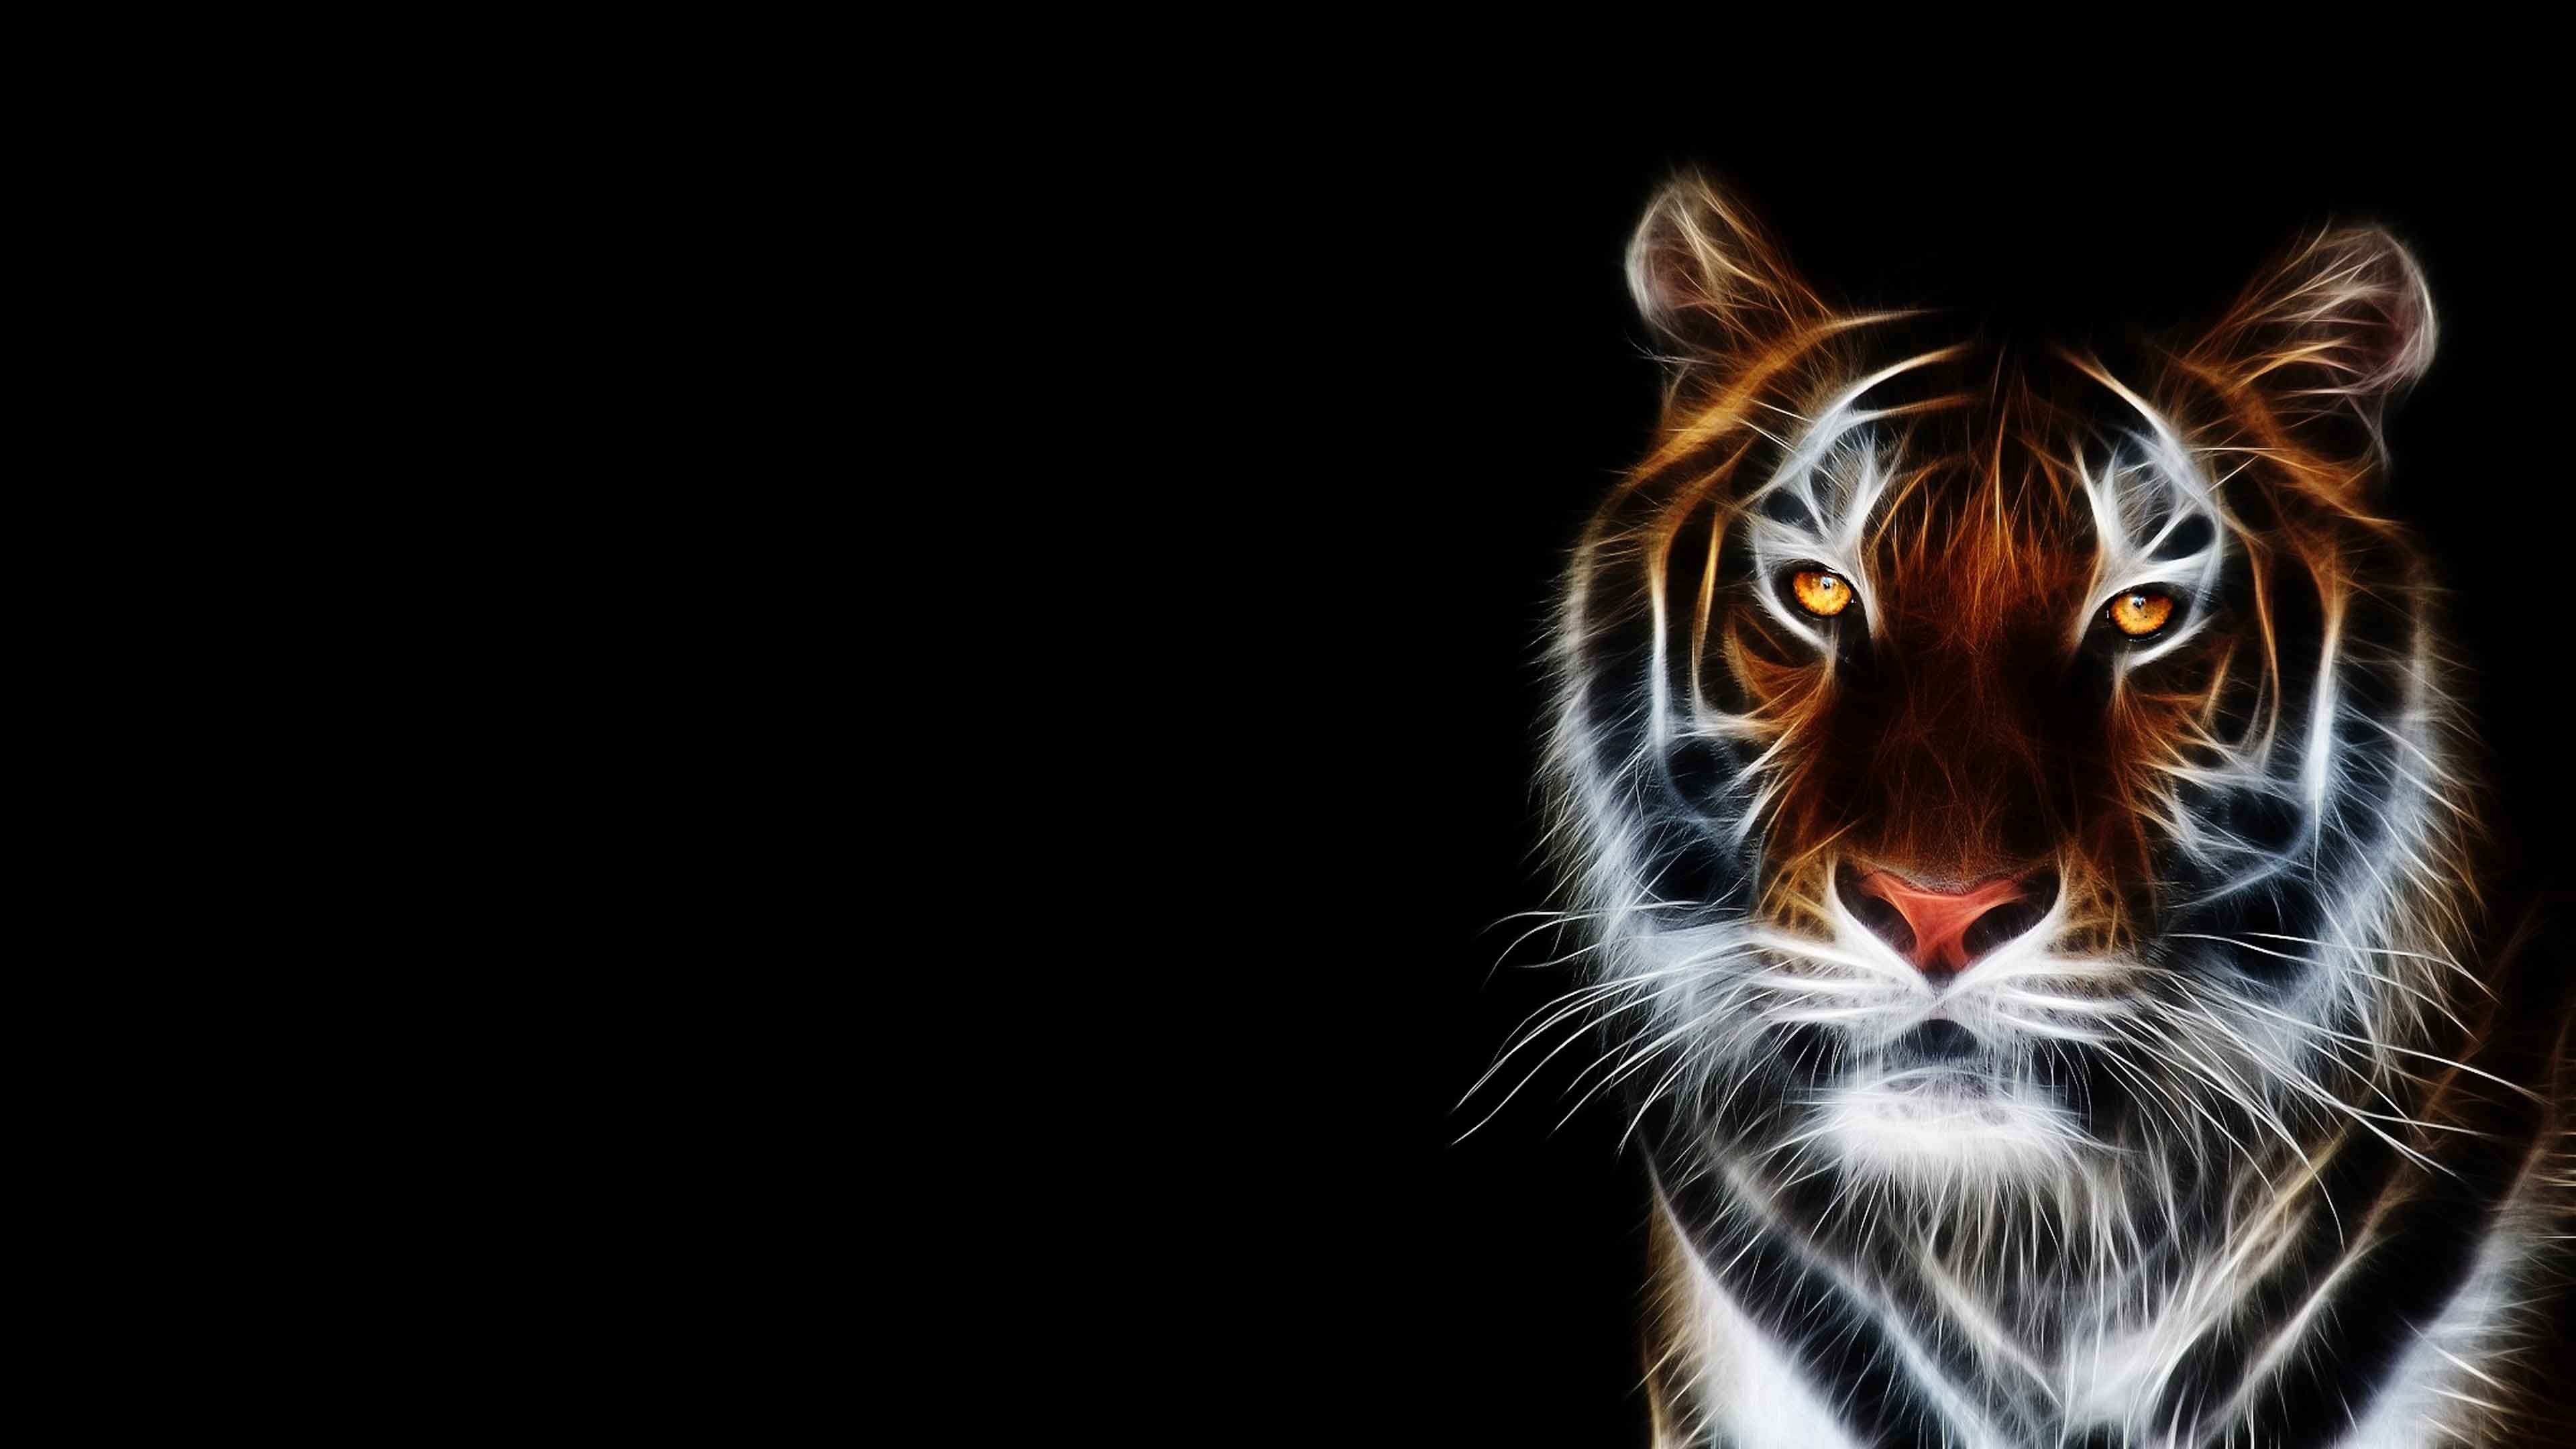 Tiger Picture 3d Animal wallpaper, Tiger pictures, Tiger